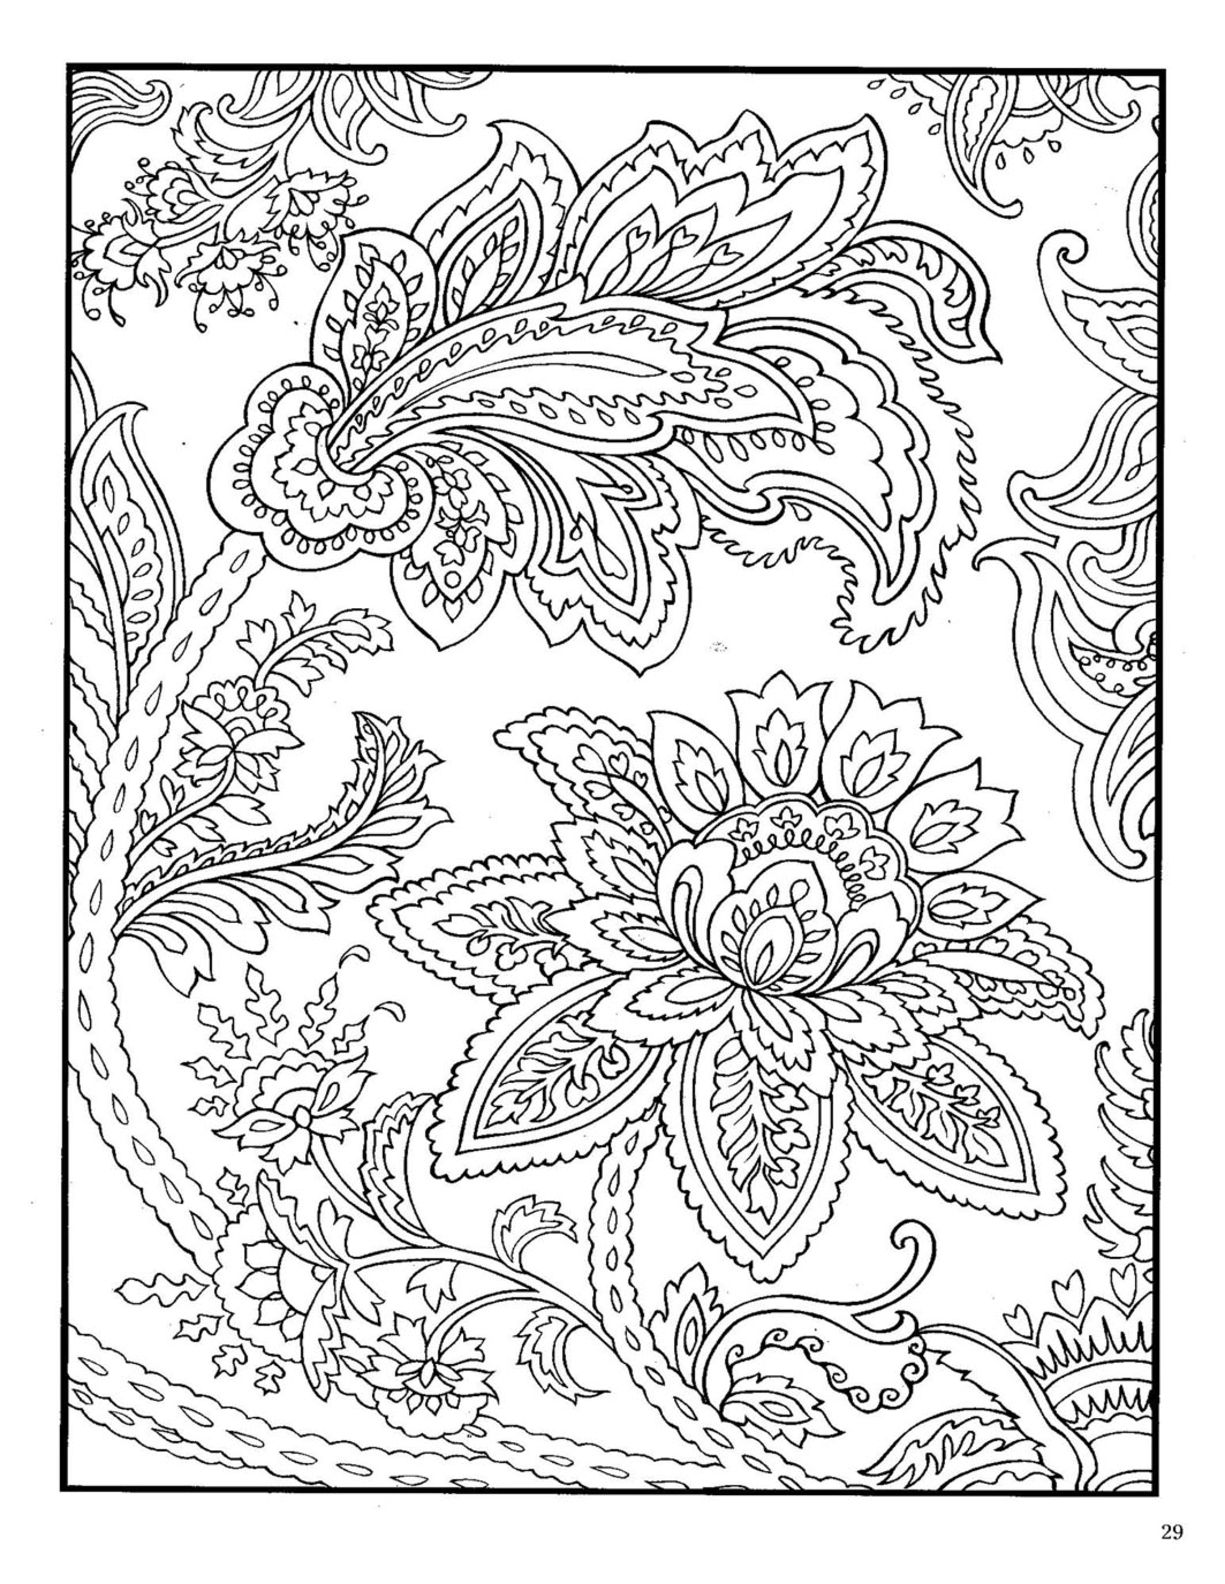 dover paisley designs coloring book coloring pages pinterest paisley design coloring